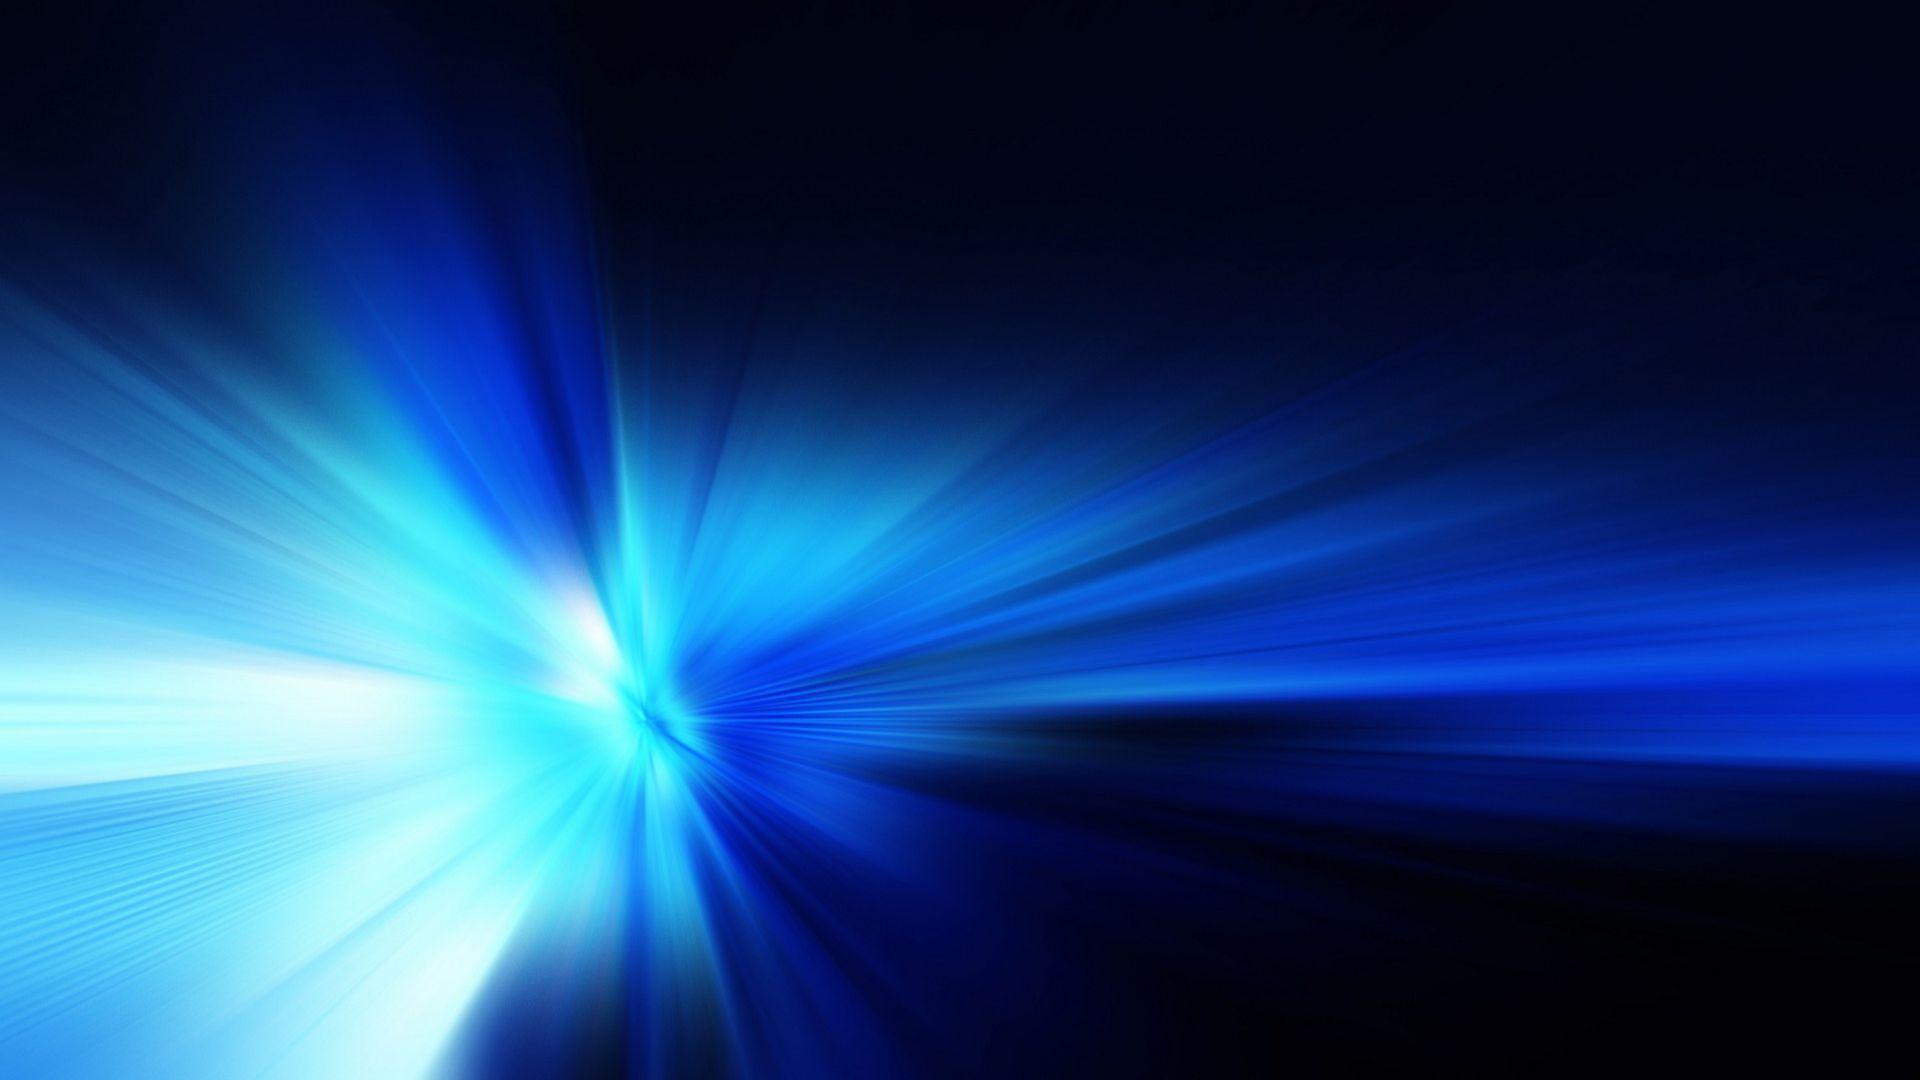 Abstract Blue Backgrounds - Wallpaper Cave